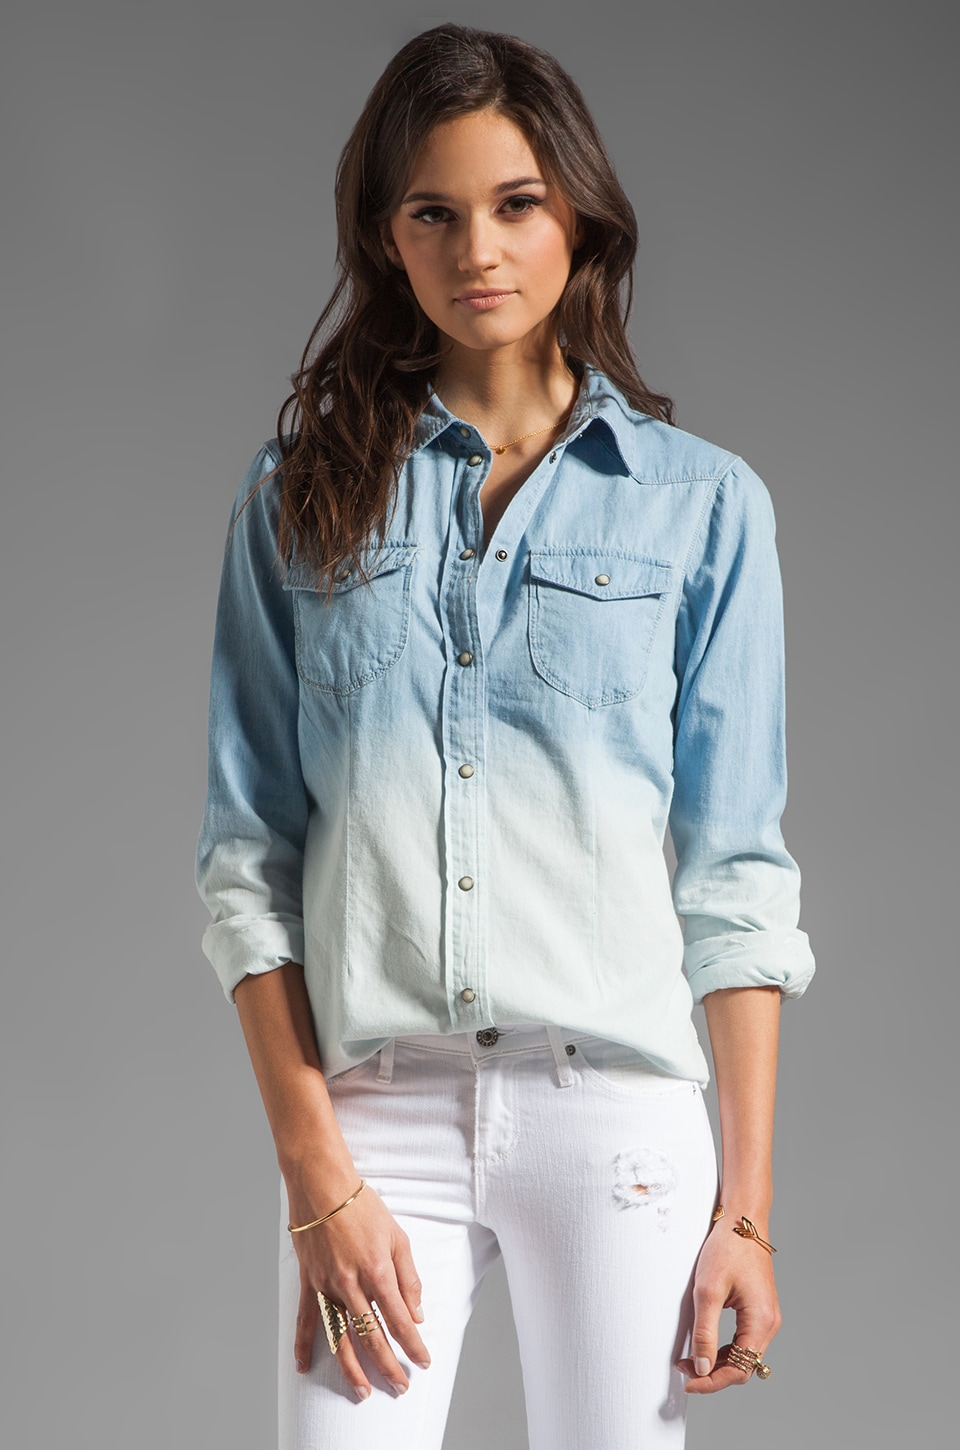 Sanctuary Southern Rock Shirt in Dip Dye Prairie